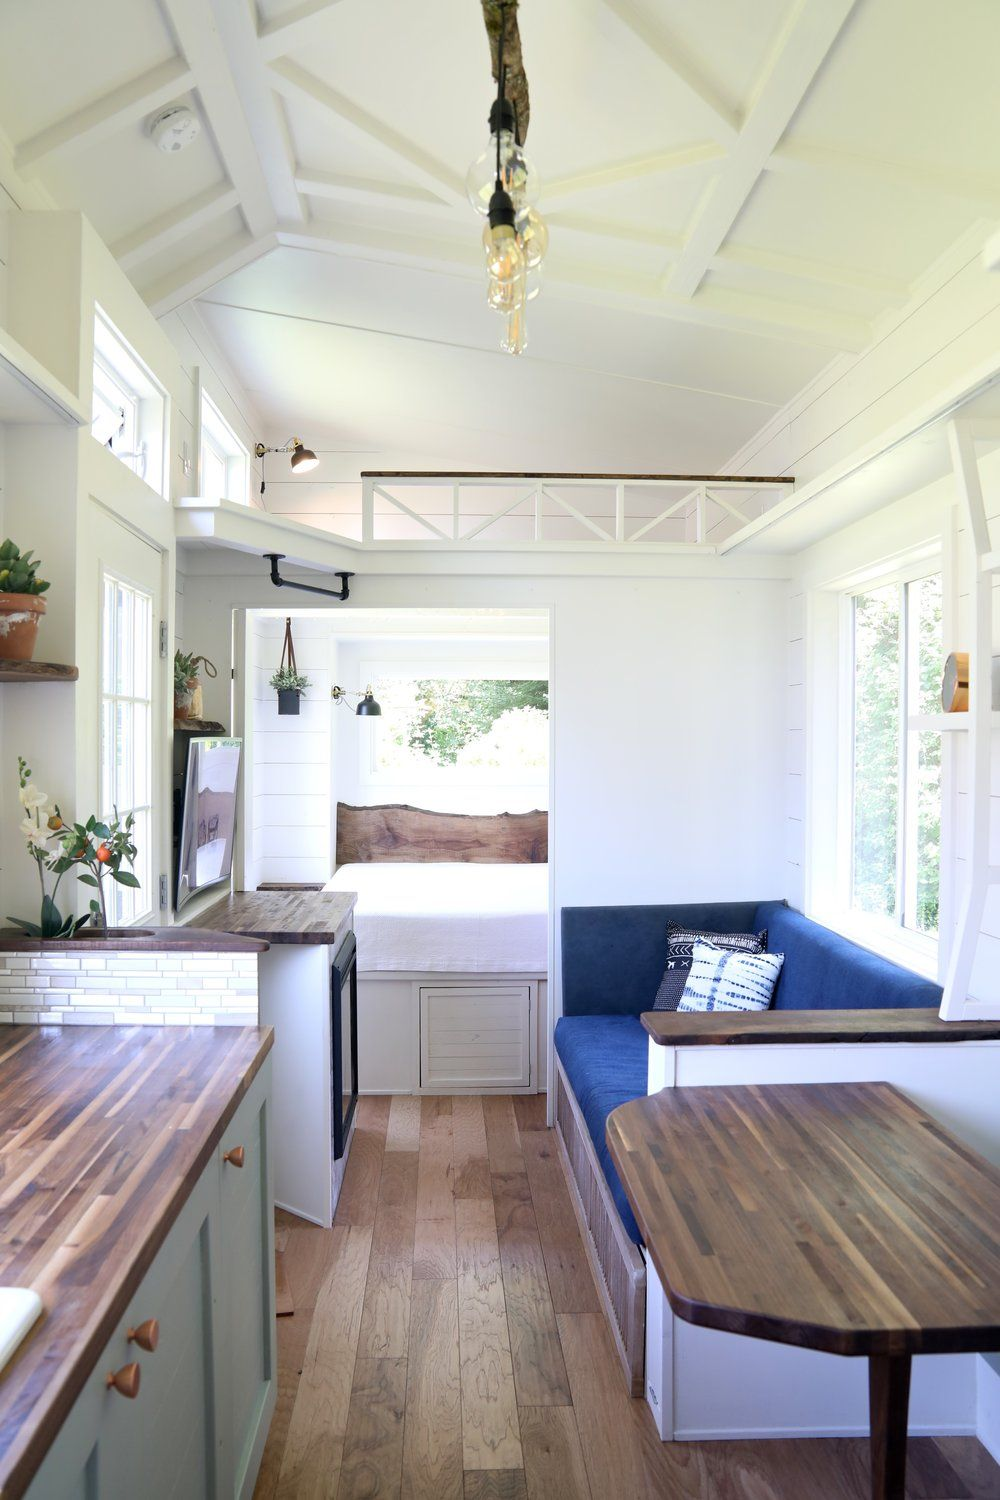 The Pacific Pioneer A Beautiful New Itny Home Available